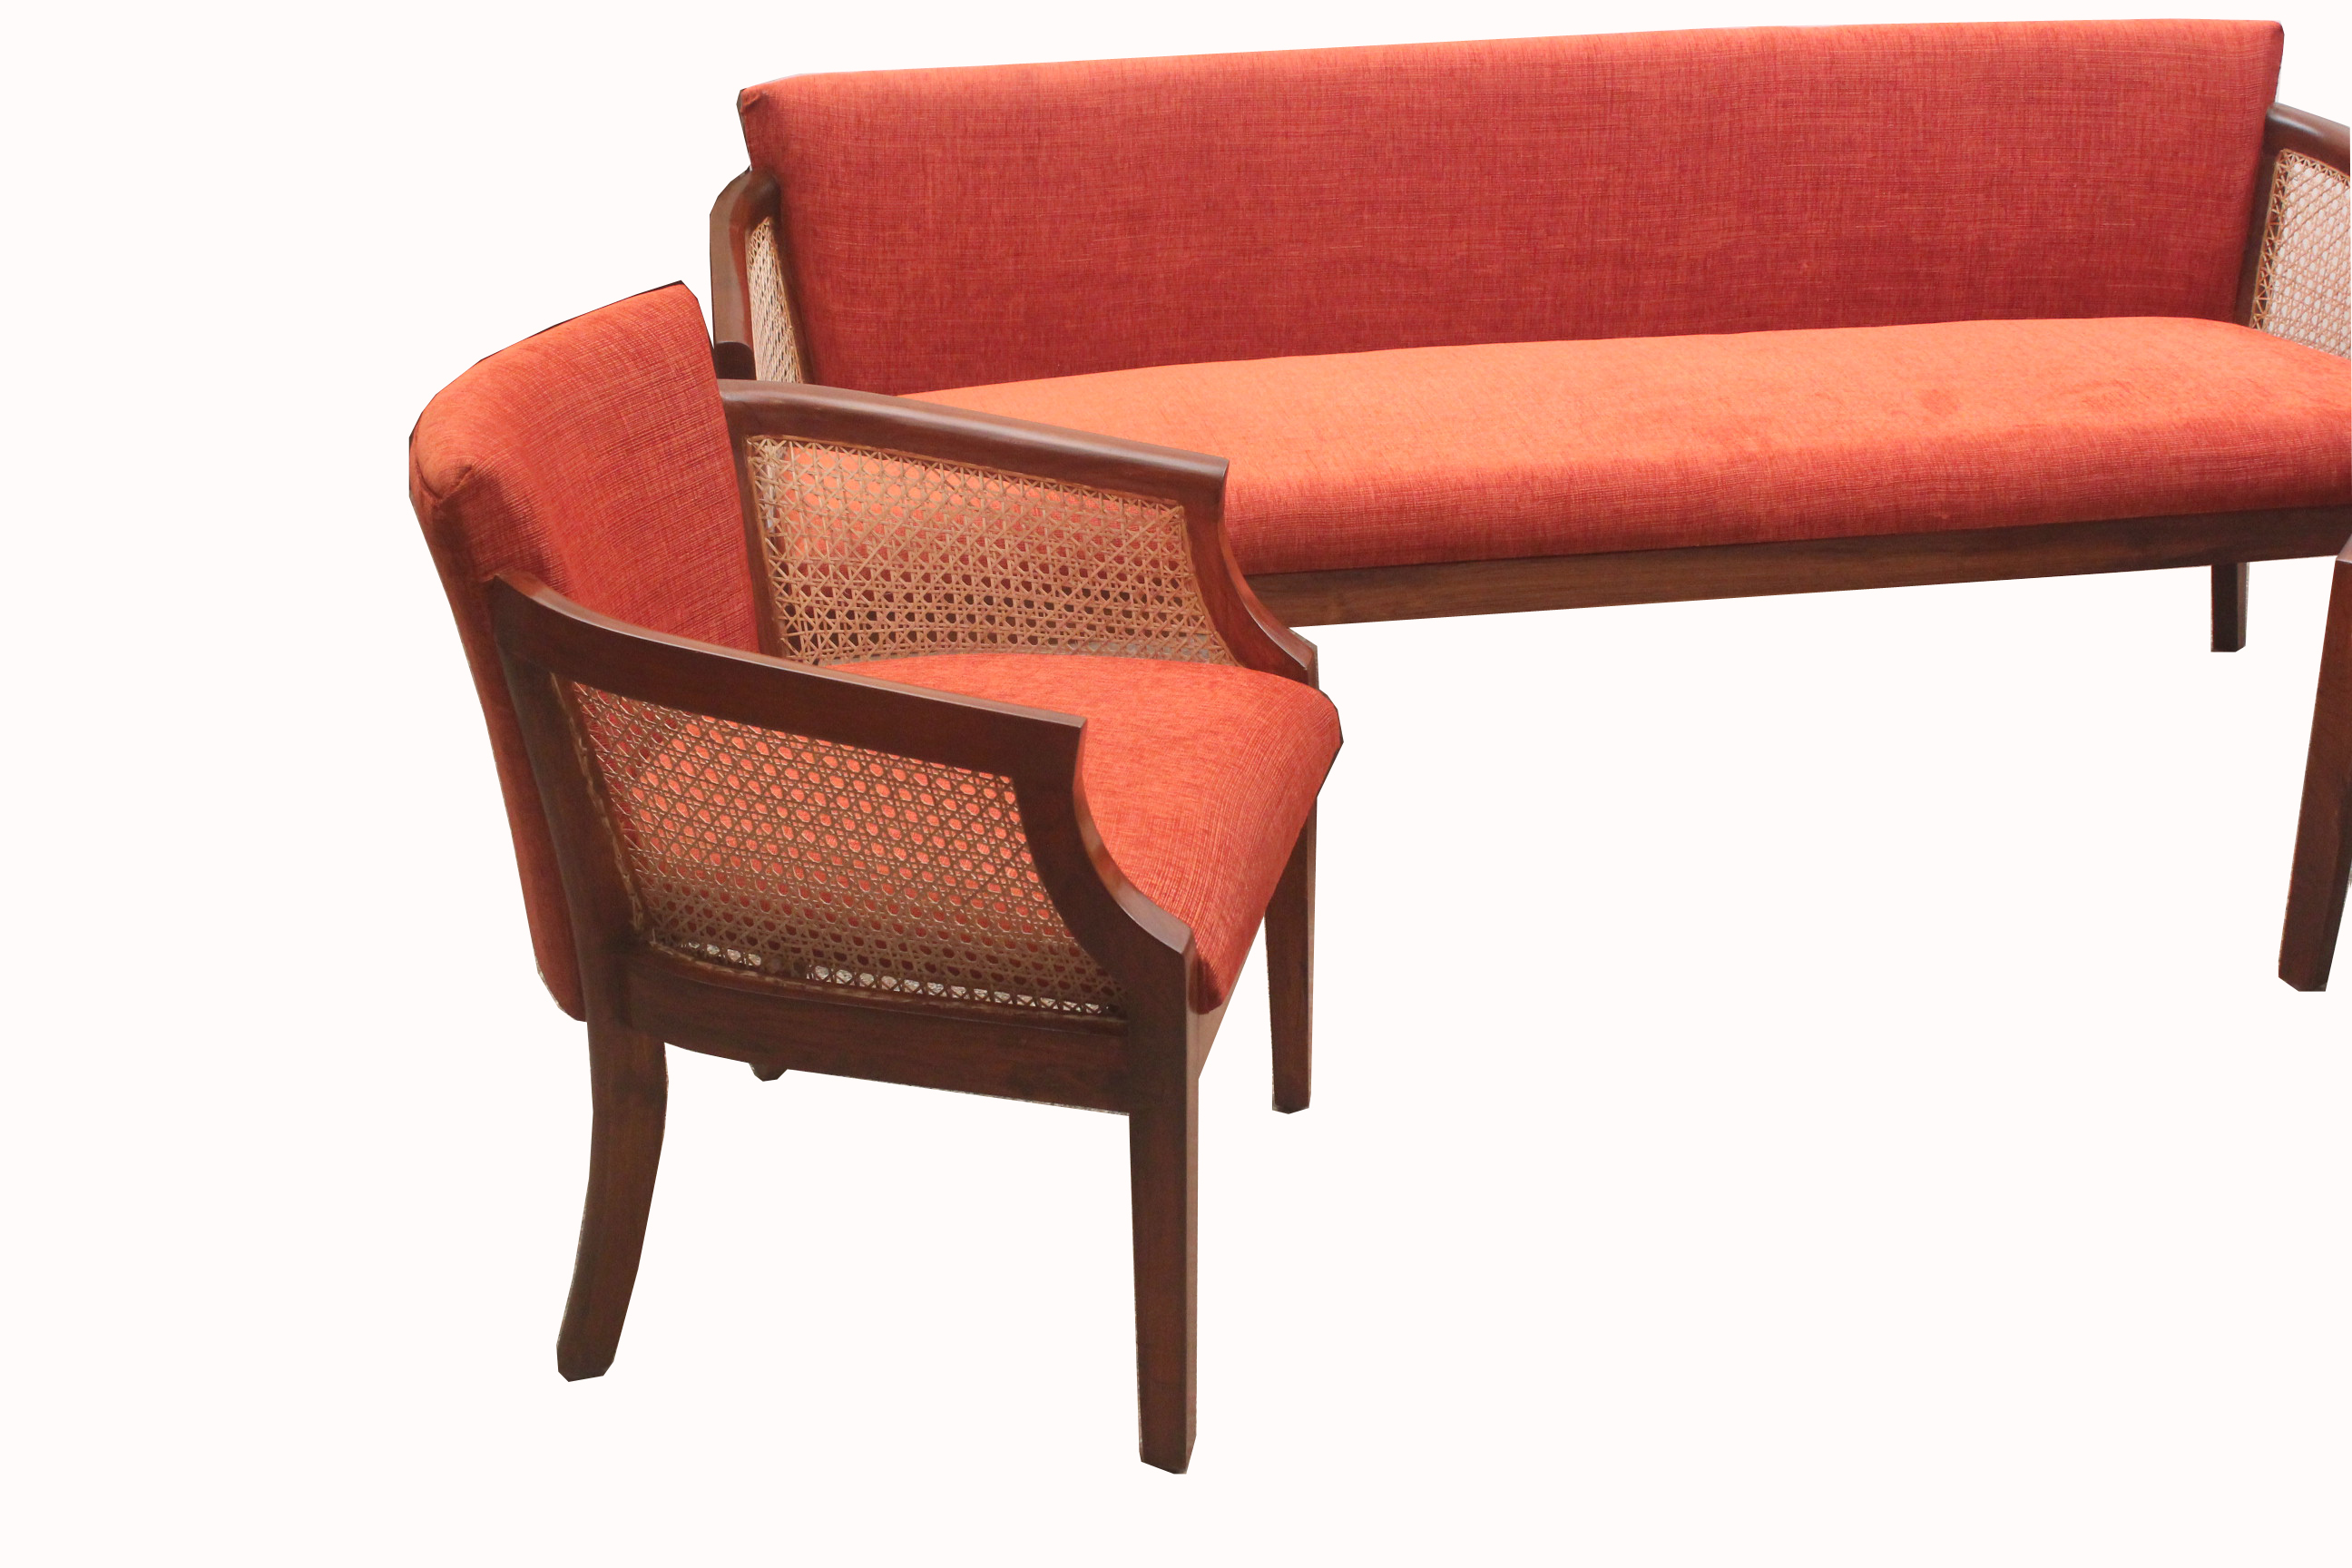 100 Lounge Furniture Manufacturers In Bangalore Lounge Chair Office Chairs Online Buy